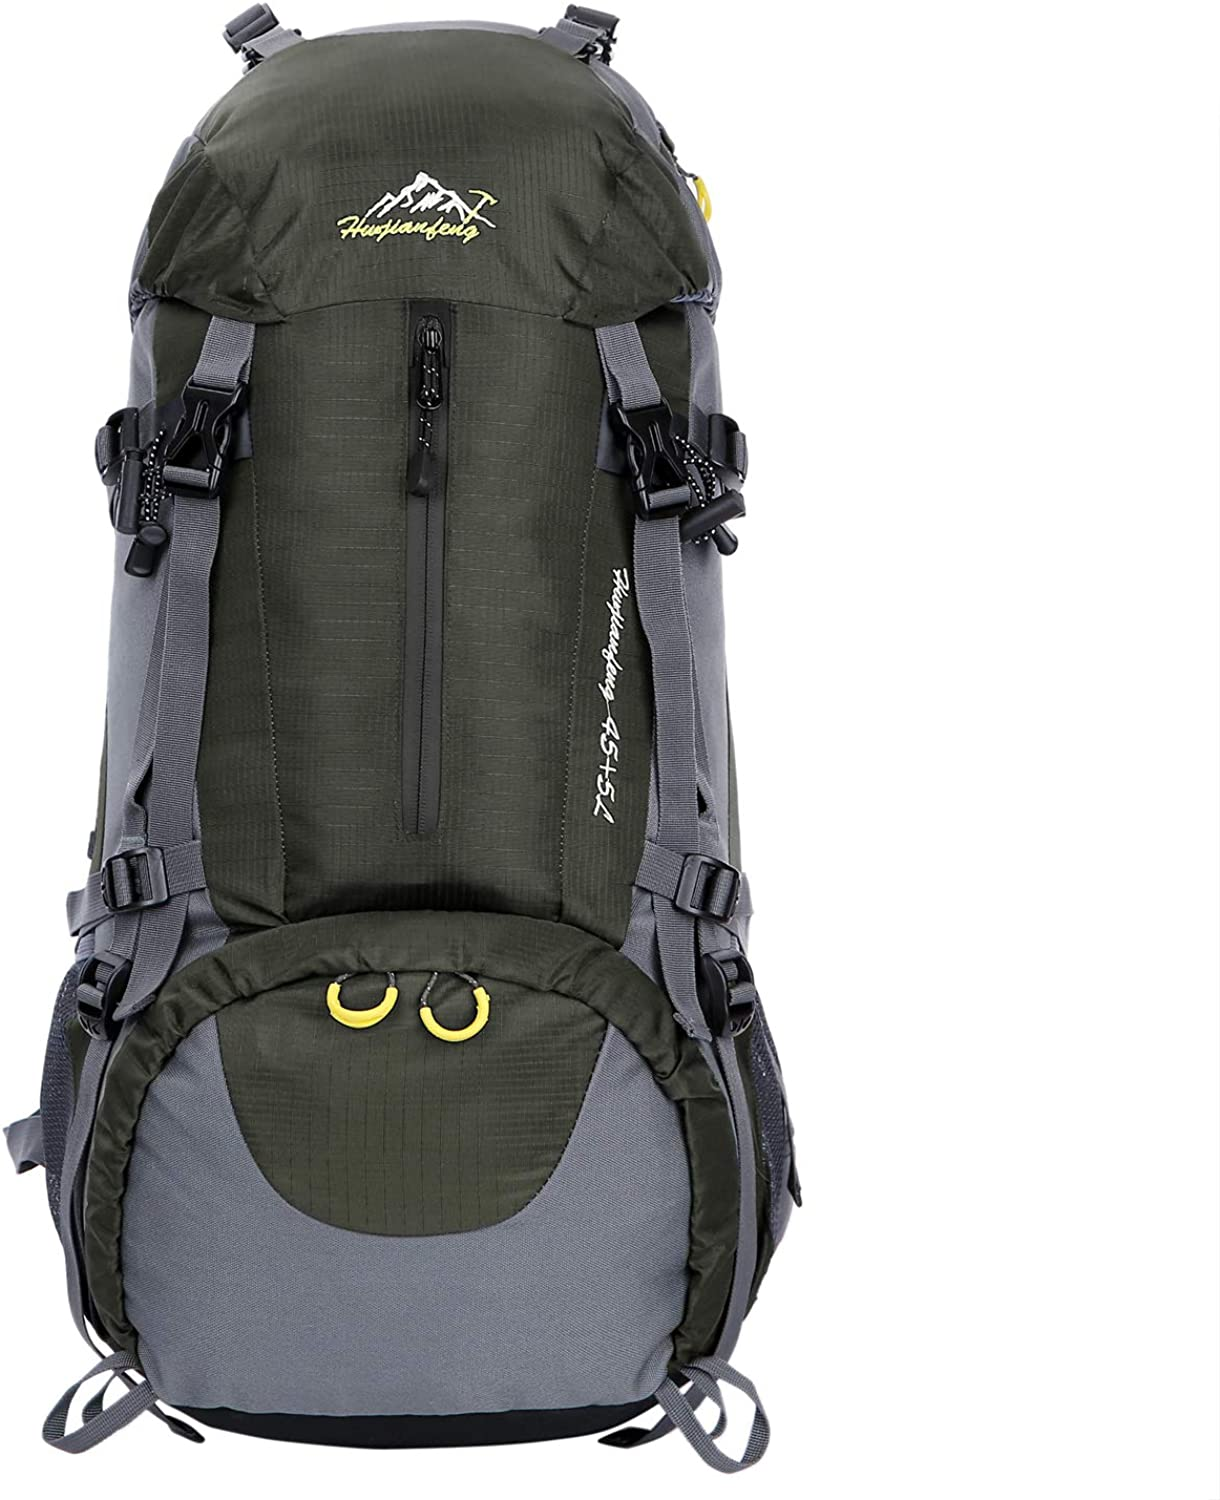 WoneNice 50L(45+5) Waterproof Hiking Backpack - Outdoor Sport Daypack with Rain Cover